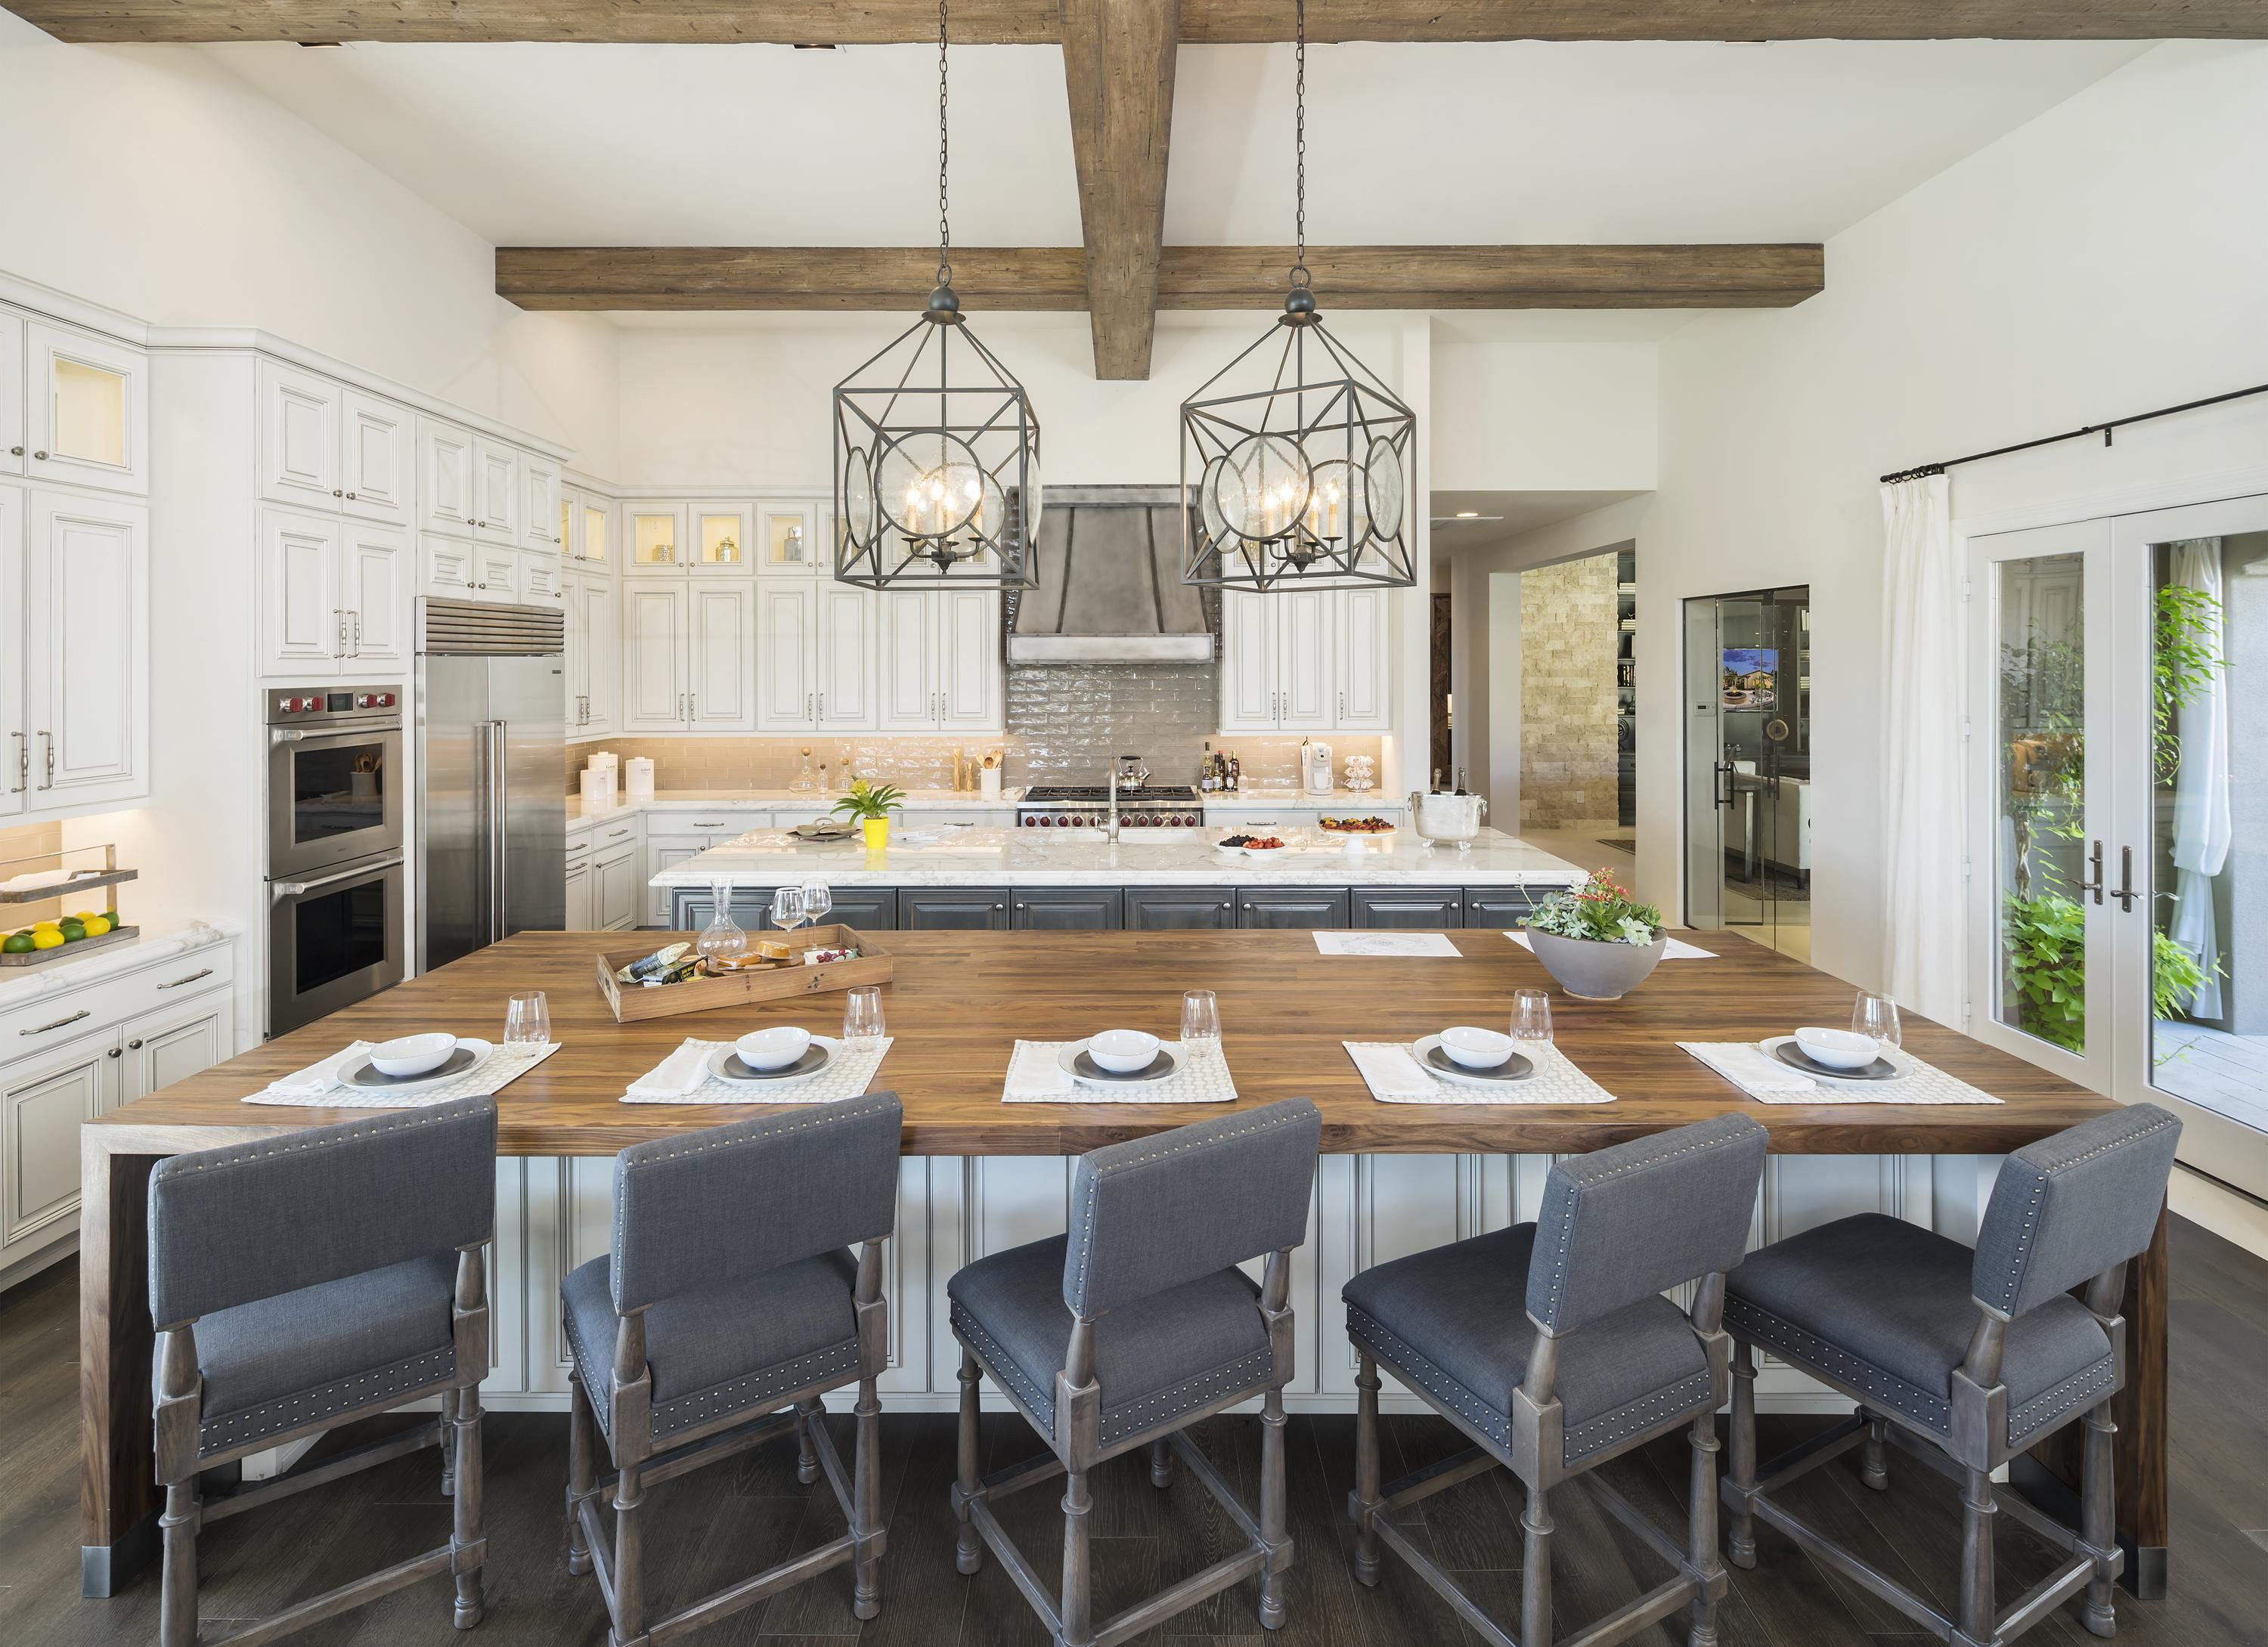 this table is perfect for a meal for family and friends from rh pinterest com